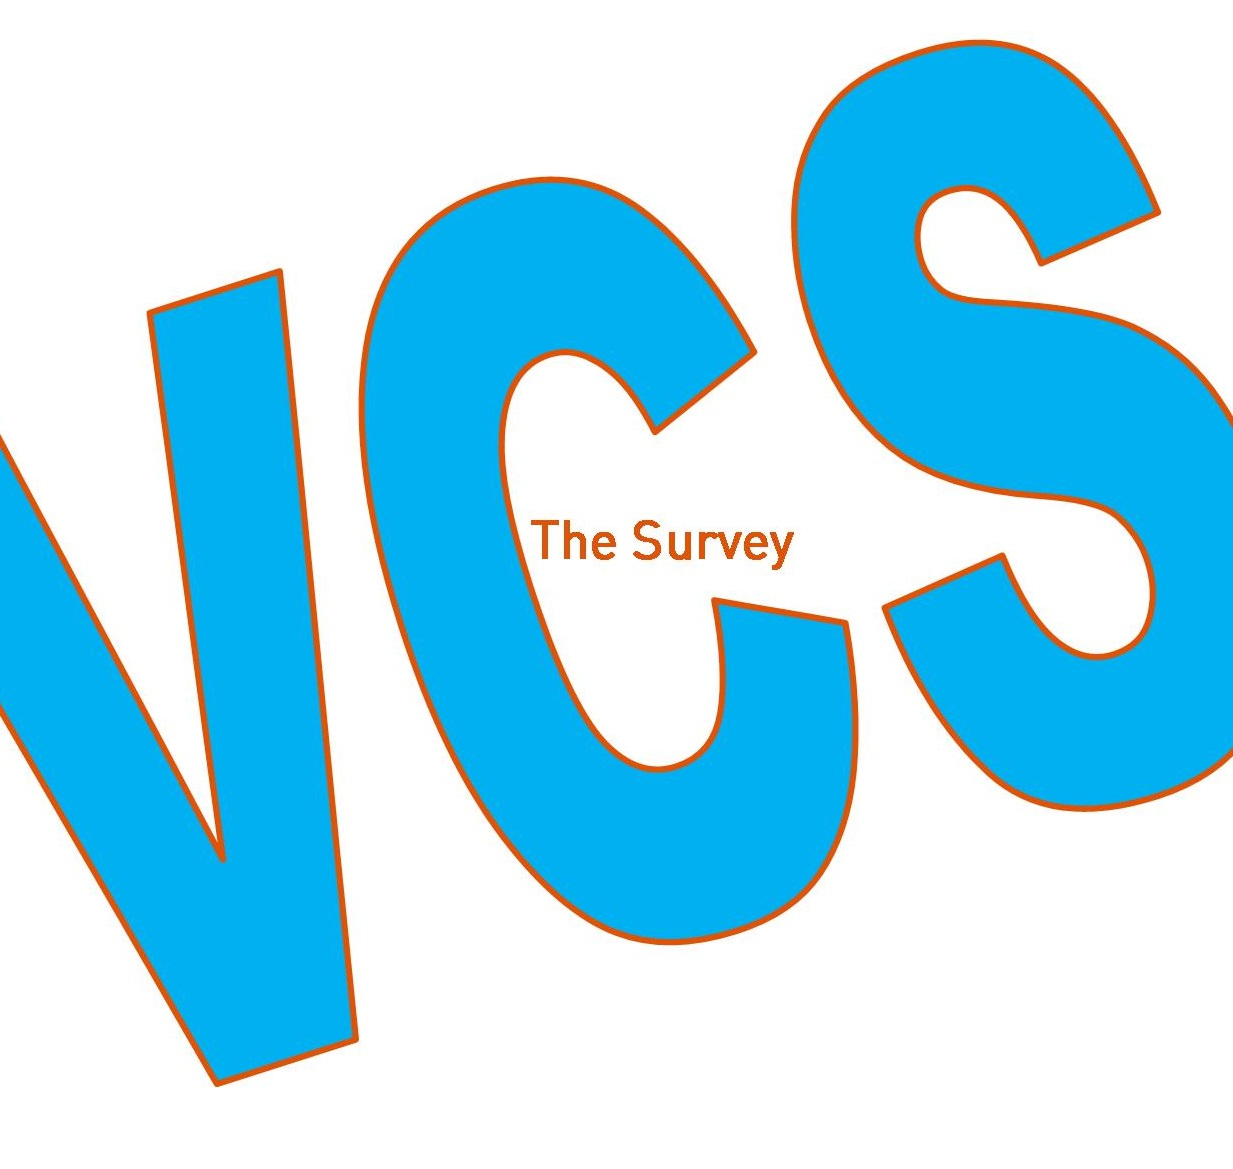 VCS_Survey_website.jpg